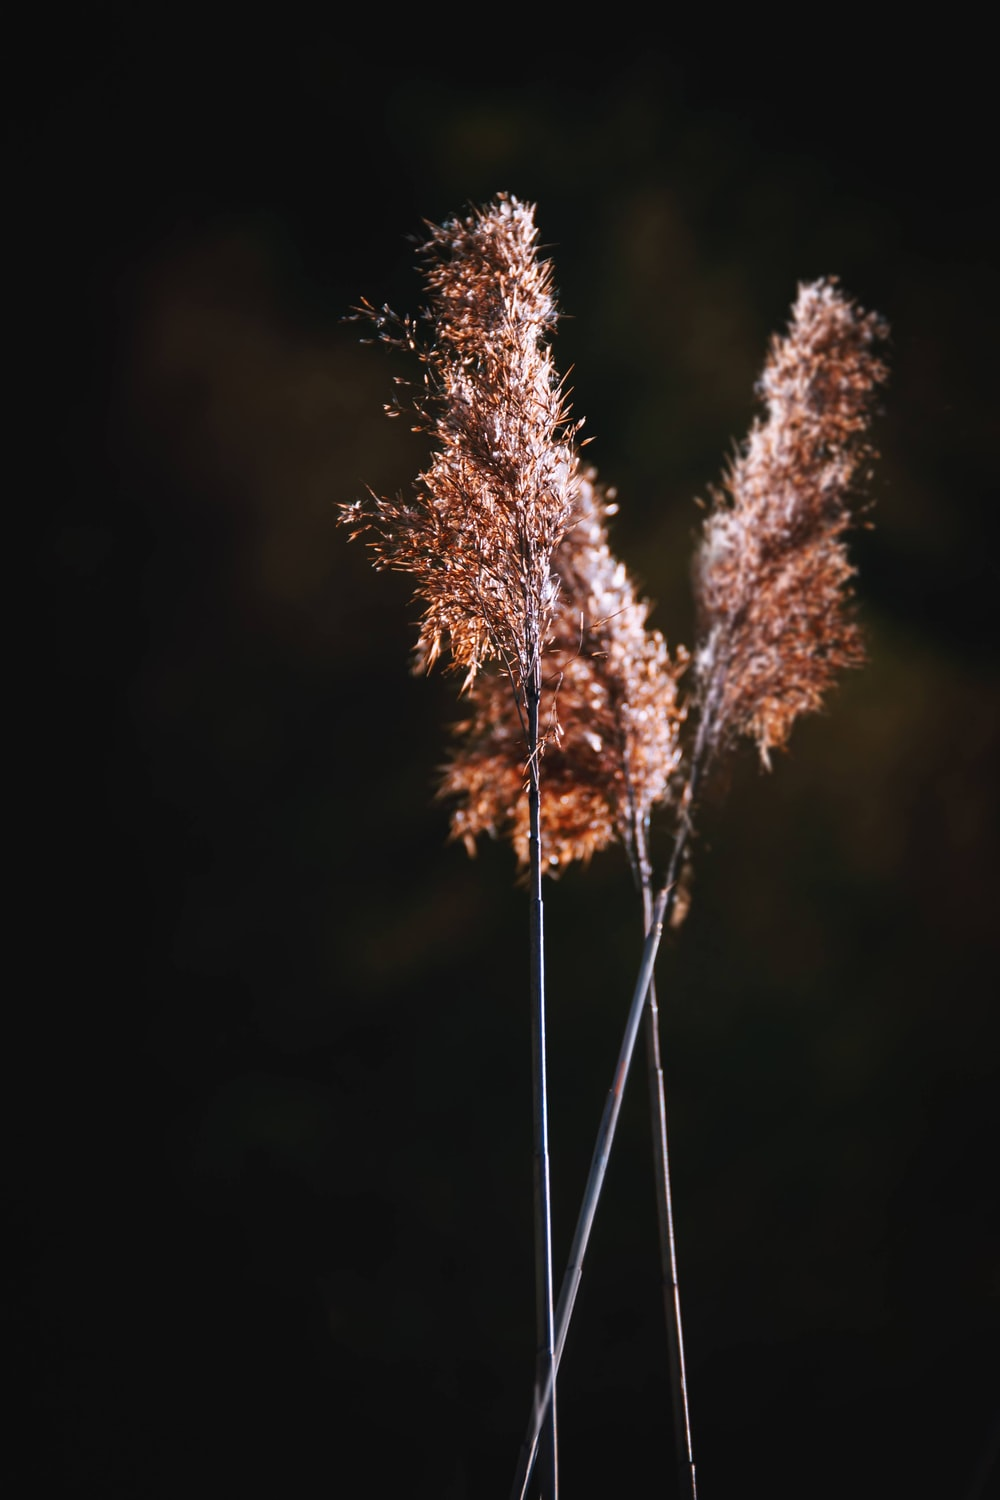 brown plant in close up photography